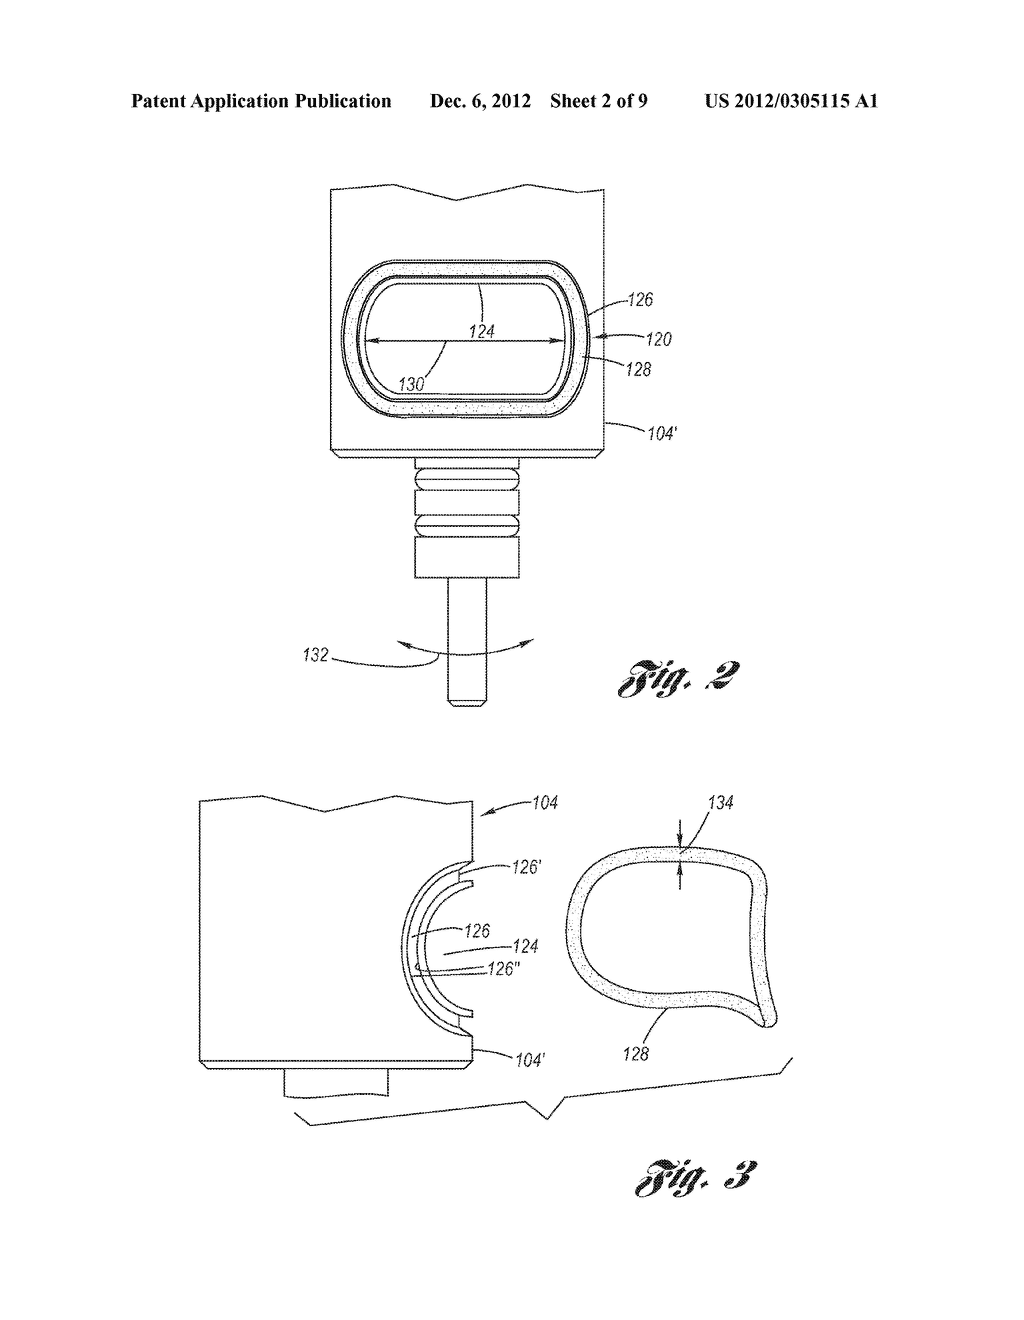 Fluid Valve Port Optimized for Robustness with Standard O-Ring Seal - diagram, schematic, and image 03